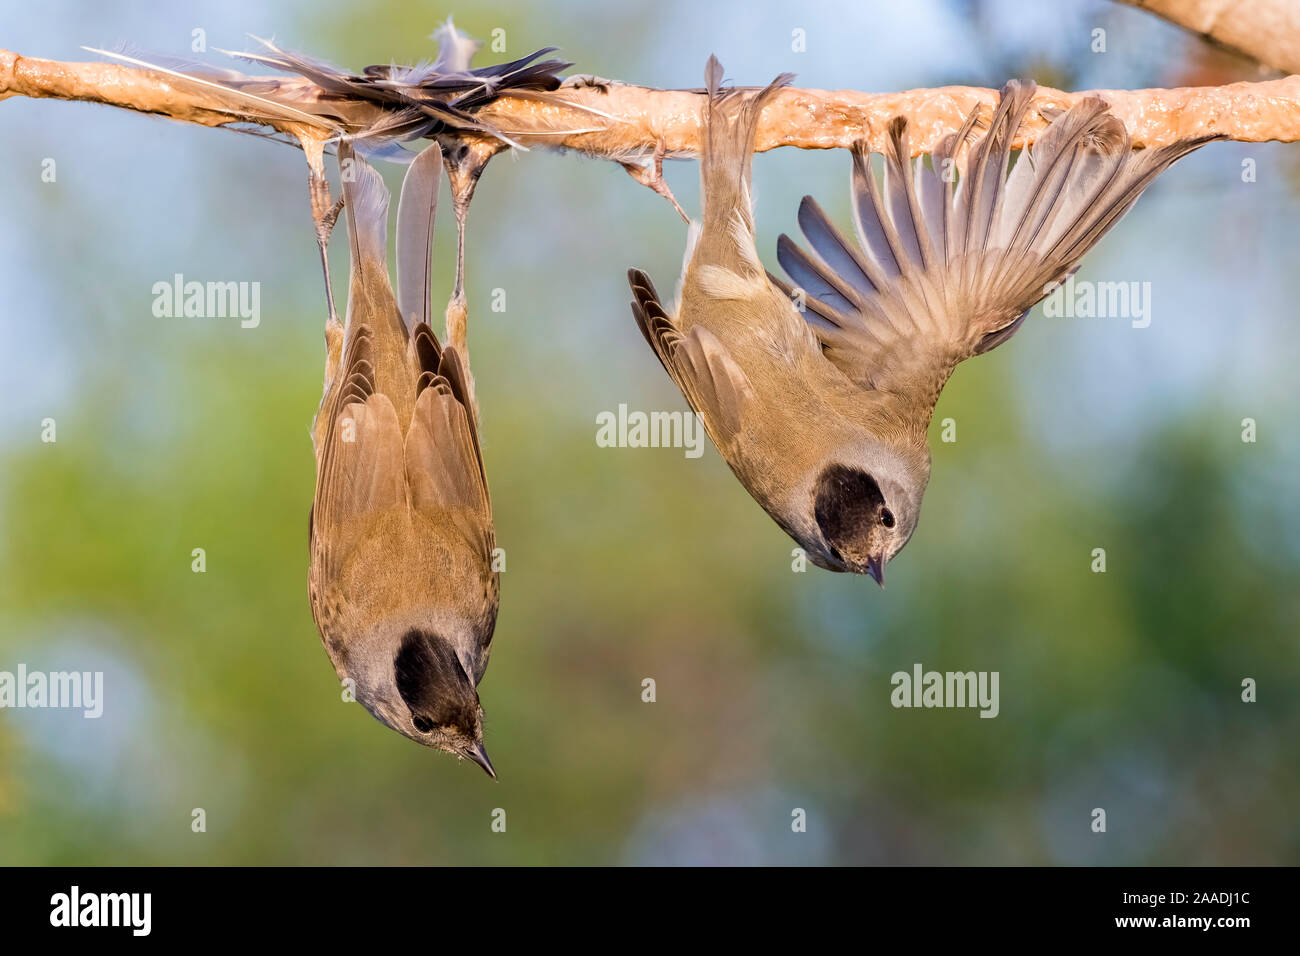 Eurasian blackcaps (Sylvia atricapilla) caught on limed stick, Cyprus. Finalist in The Wildlife Photojournalist Award: Single Image Category of the Wildlife Photographer of  the Year Awards (WPOY) Competition 2017. Stock Photo